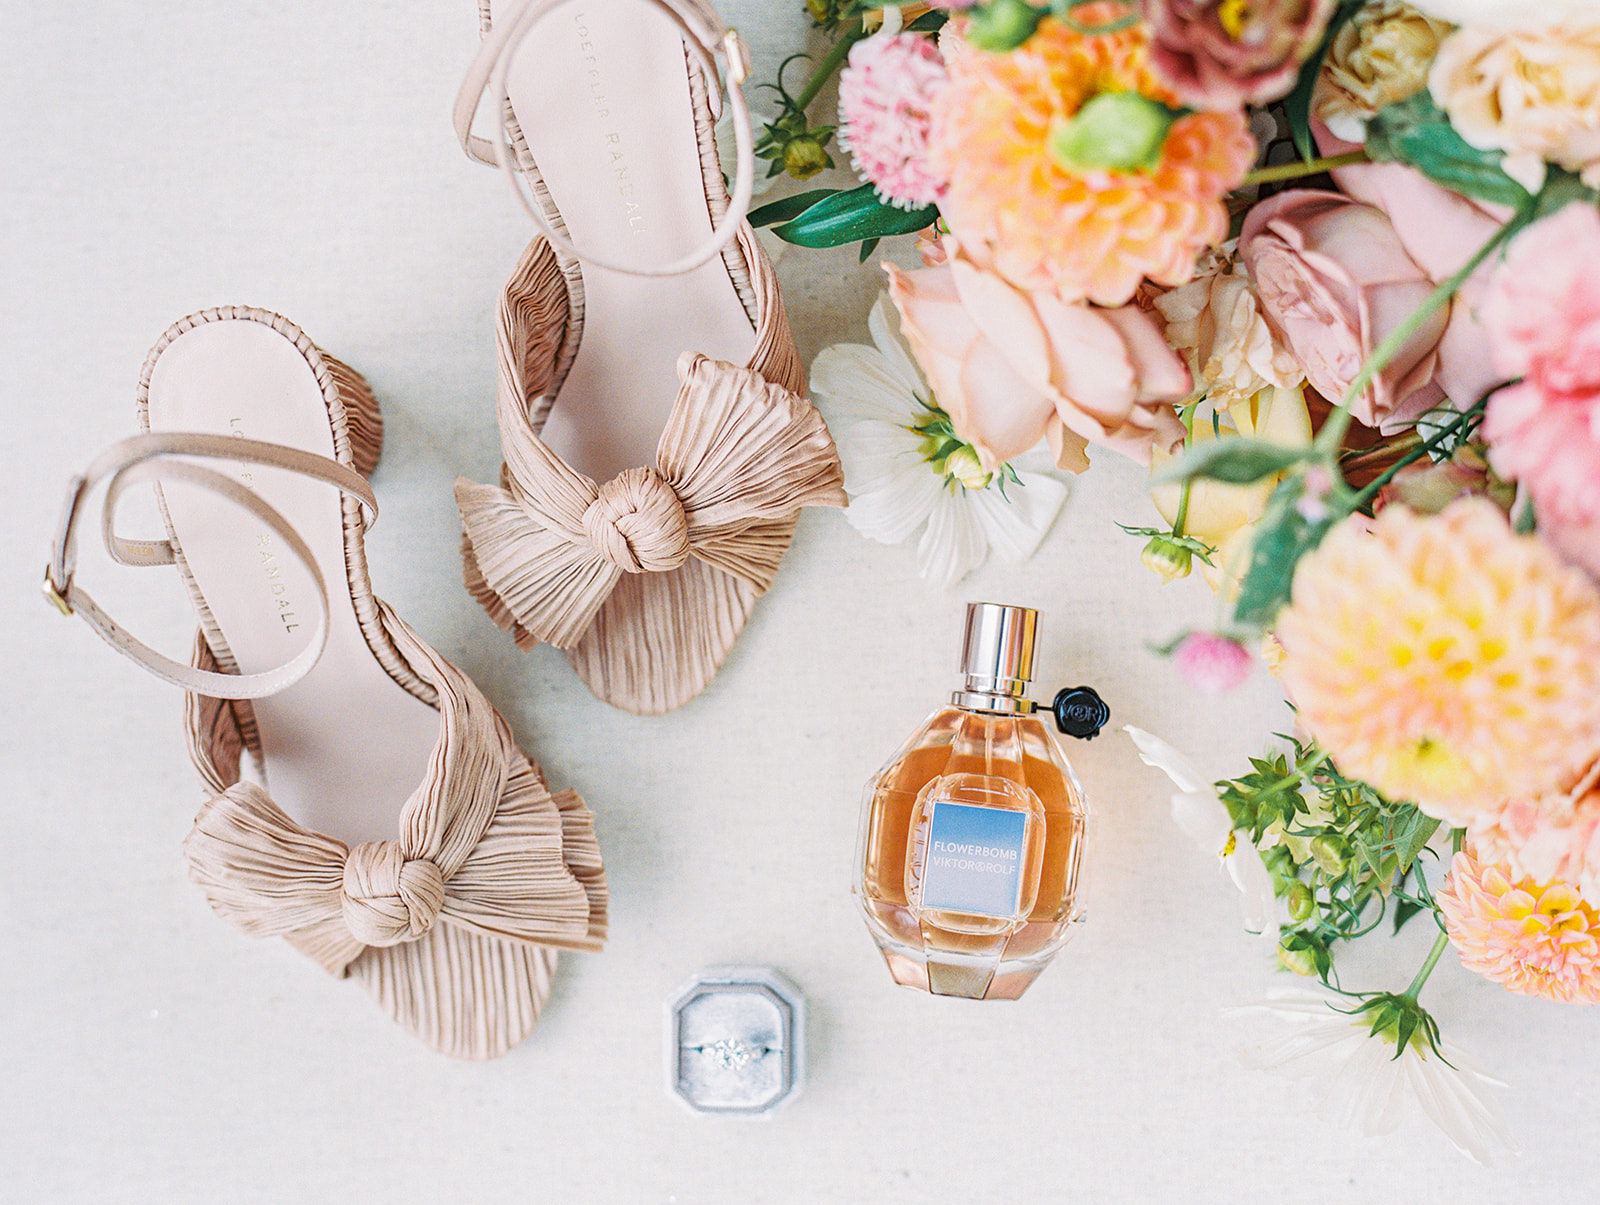 Loeffler Randall bridal shoes | Alexa Kay Events